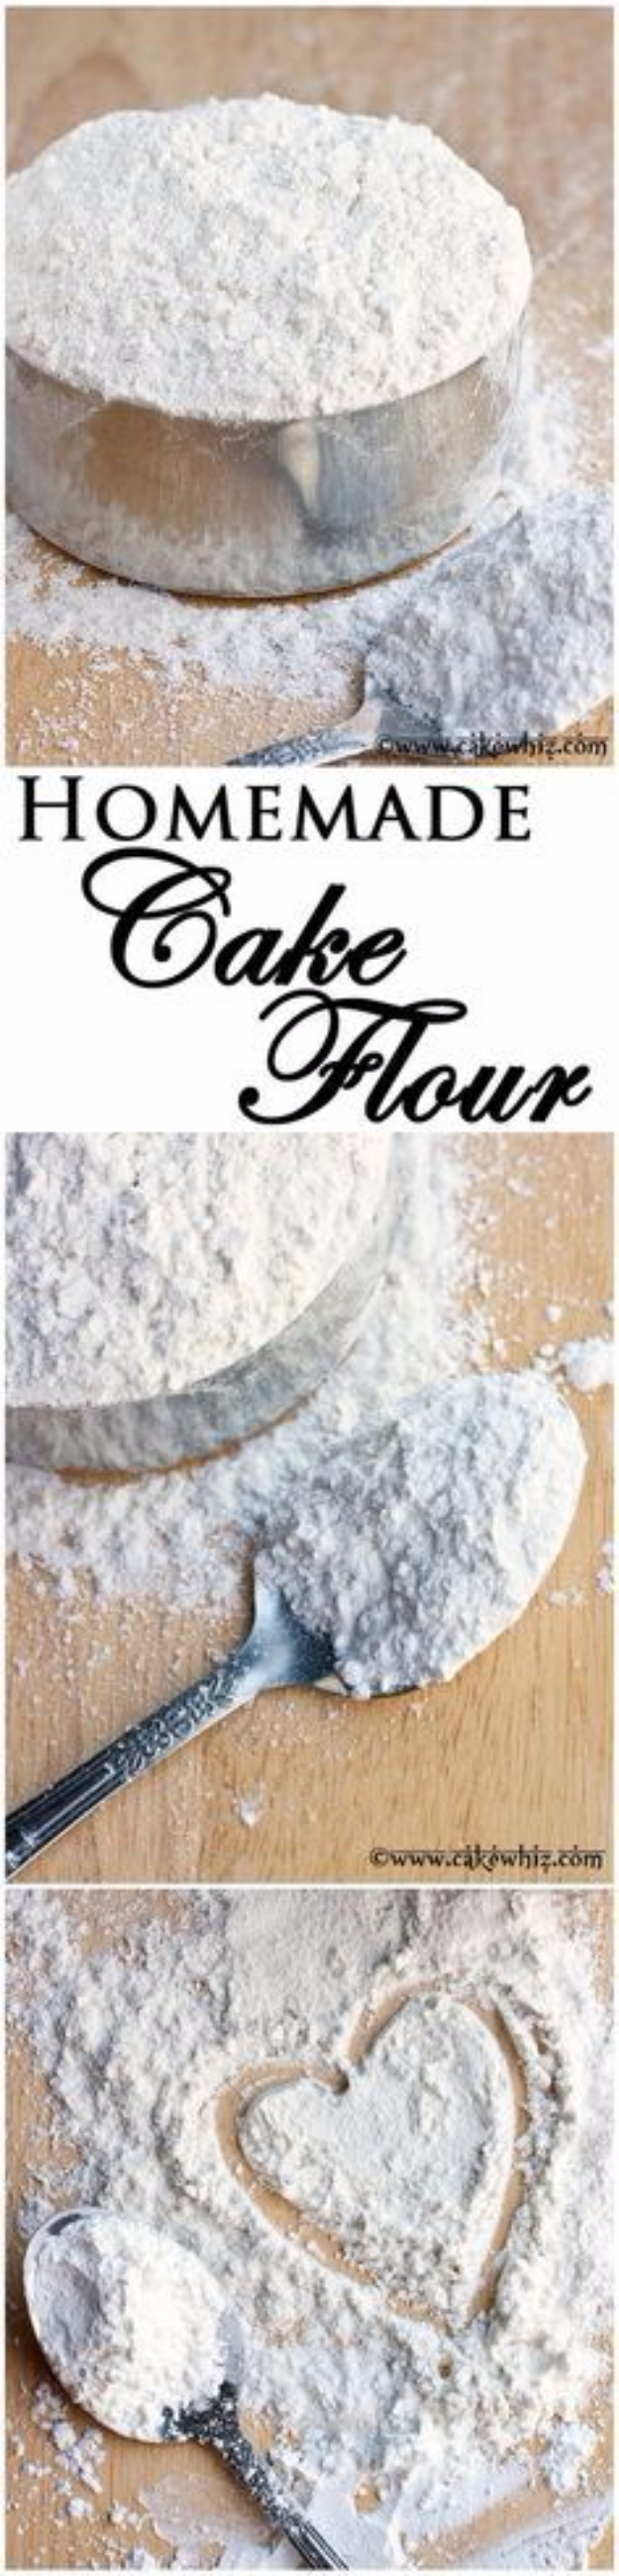 Best Baking Hacks - Homemade Cake Flour - DIY Cooking Tips and Tricks for Baking Recipes - Quick Ways to Bake Cake, Cupcakes, Desserts and Cookies - Kitchen Lifehacks for Bakers http://diyjoy.com/baking-hacks